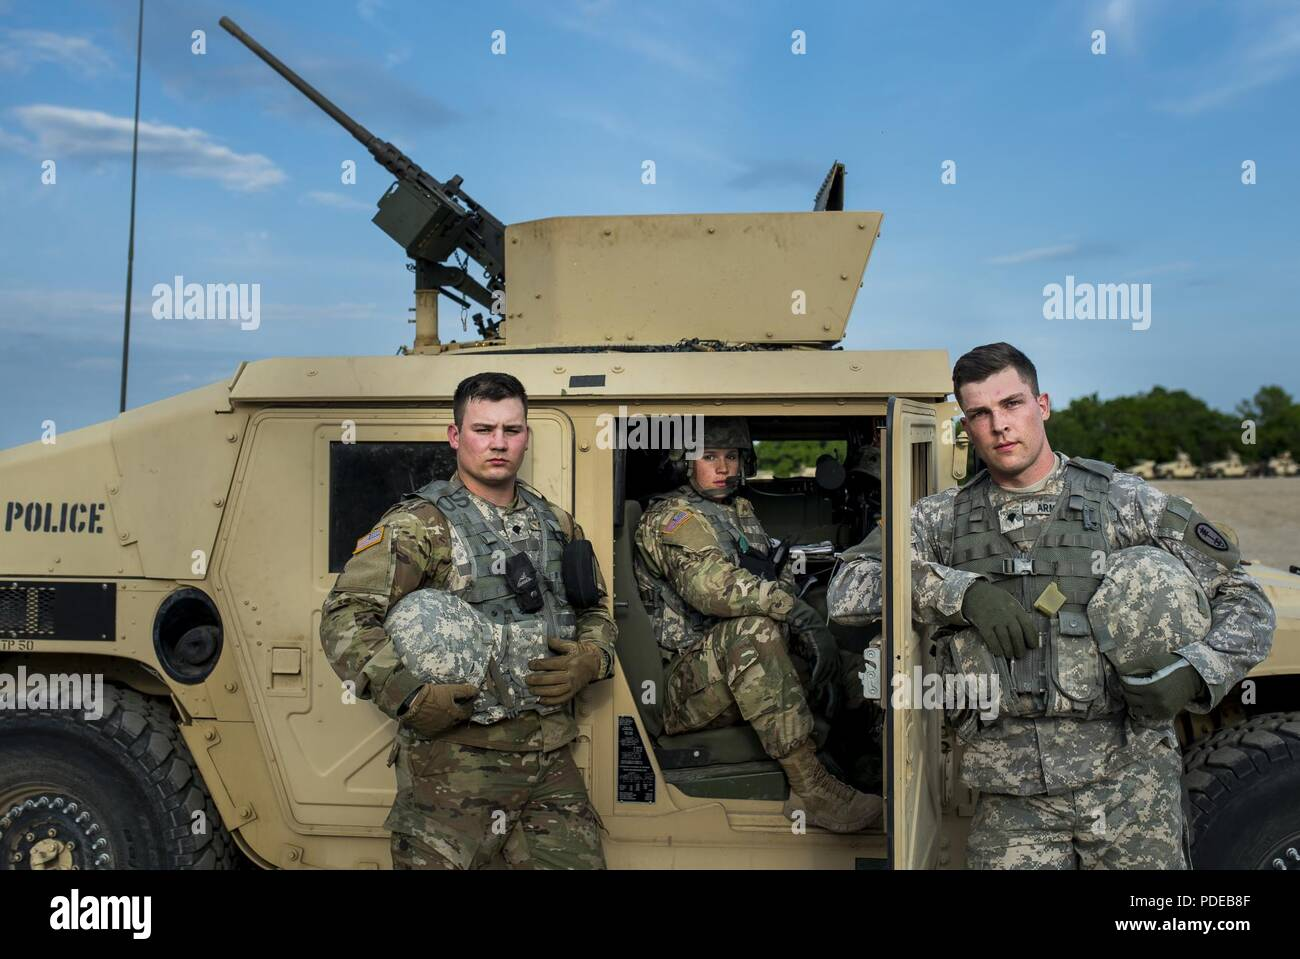 Uniform Consists Immagini   Uniform Consists Fotos Stock - Alamy 324bffc793aa